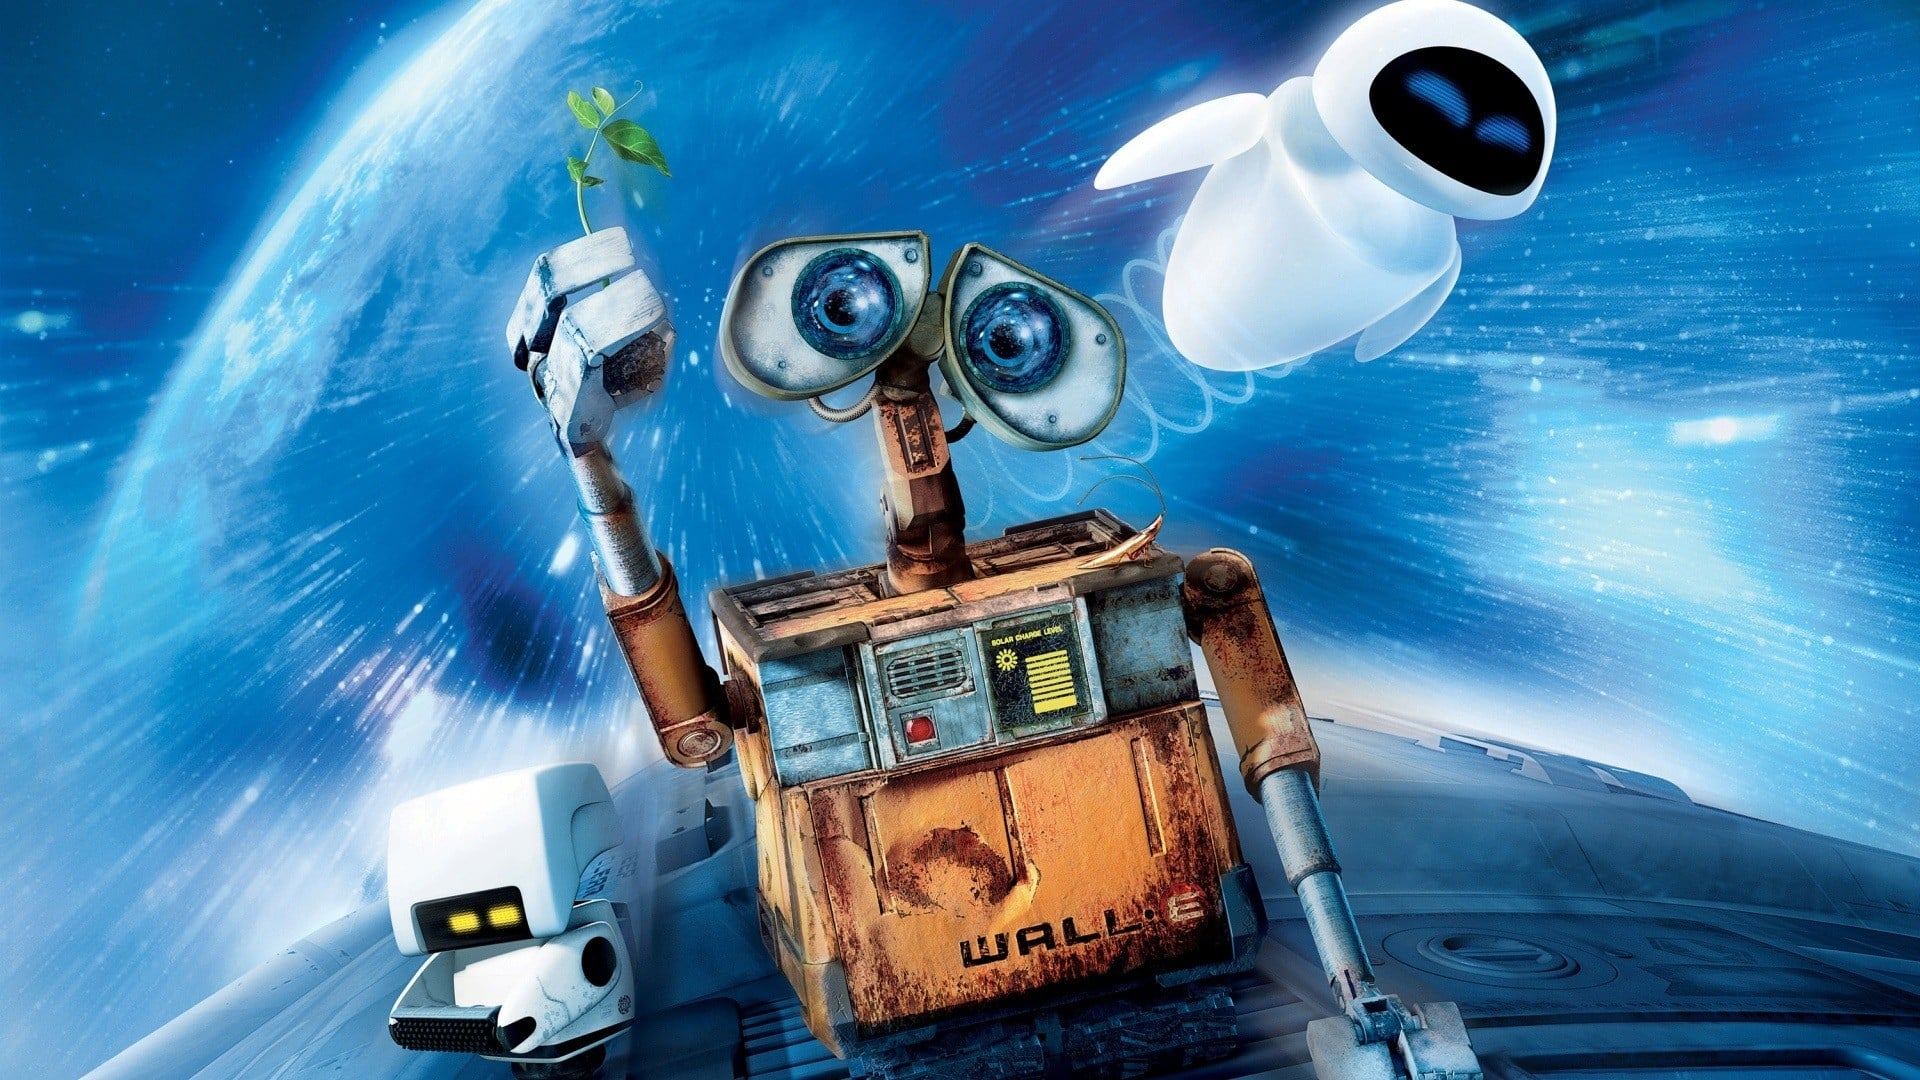 Besotted with Stars: The Problem with WALL-E